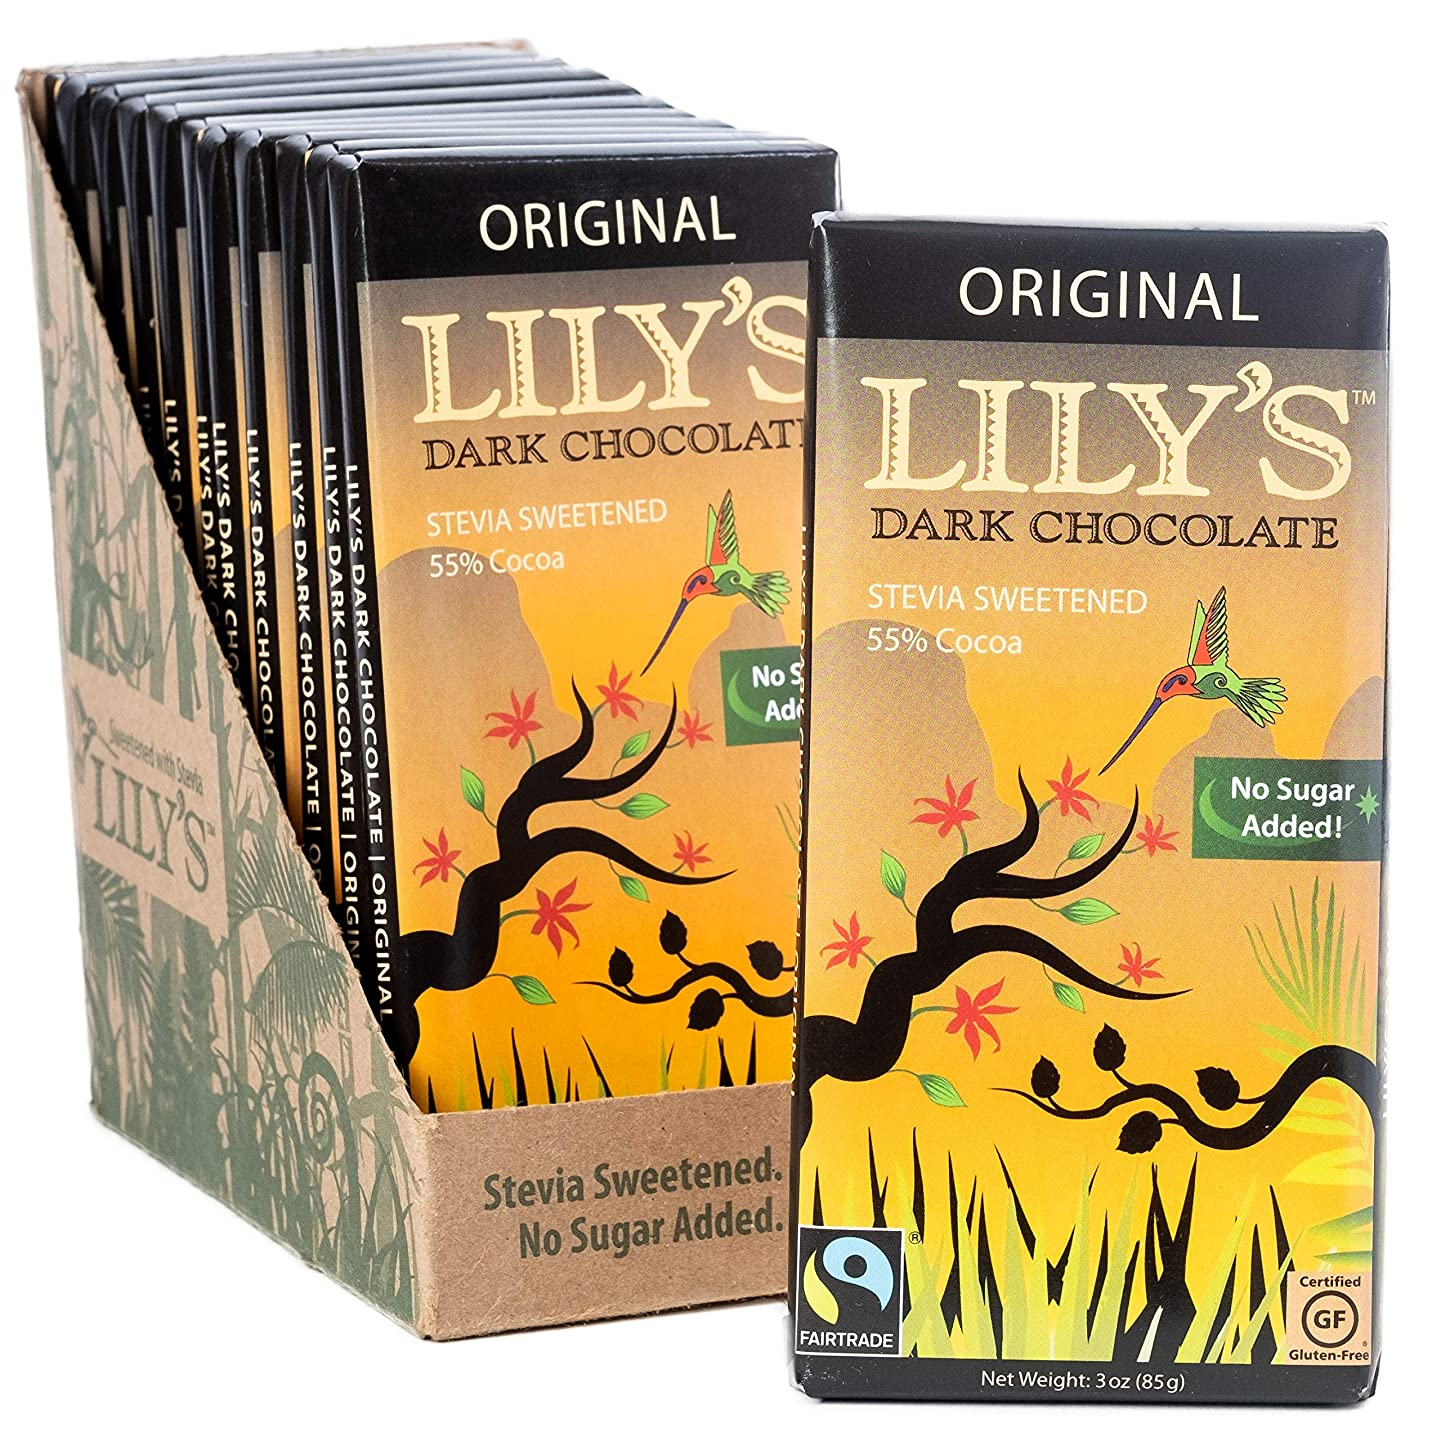 Lily's Sweets- Original Dark Chocolate Bar Stevia Sweetened, No Added Sugar, Low-Carb, Keto Friendly   55% Cacao   Fair Trade, Gluten-Free & Non-GMO   3 ounce, 12-Pack